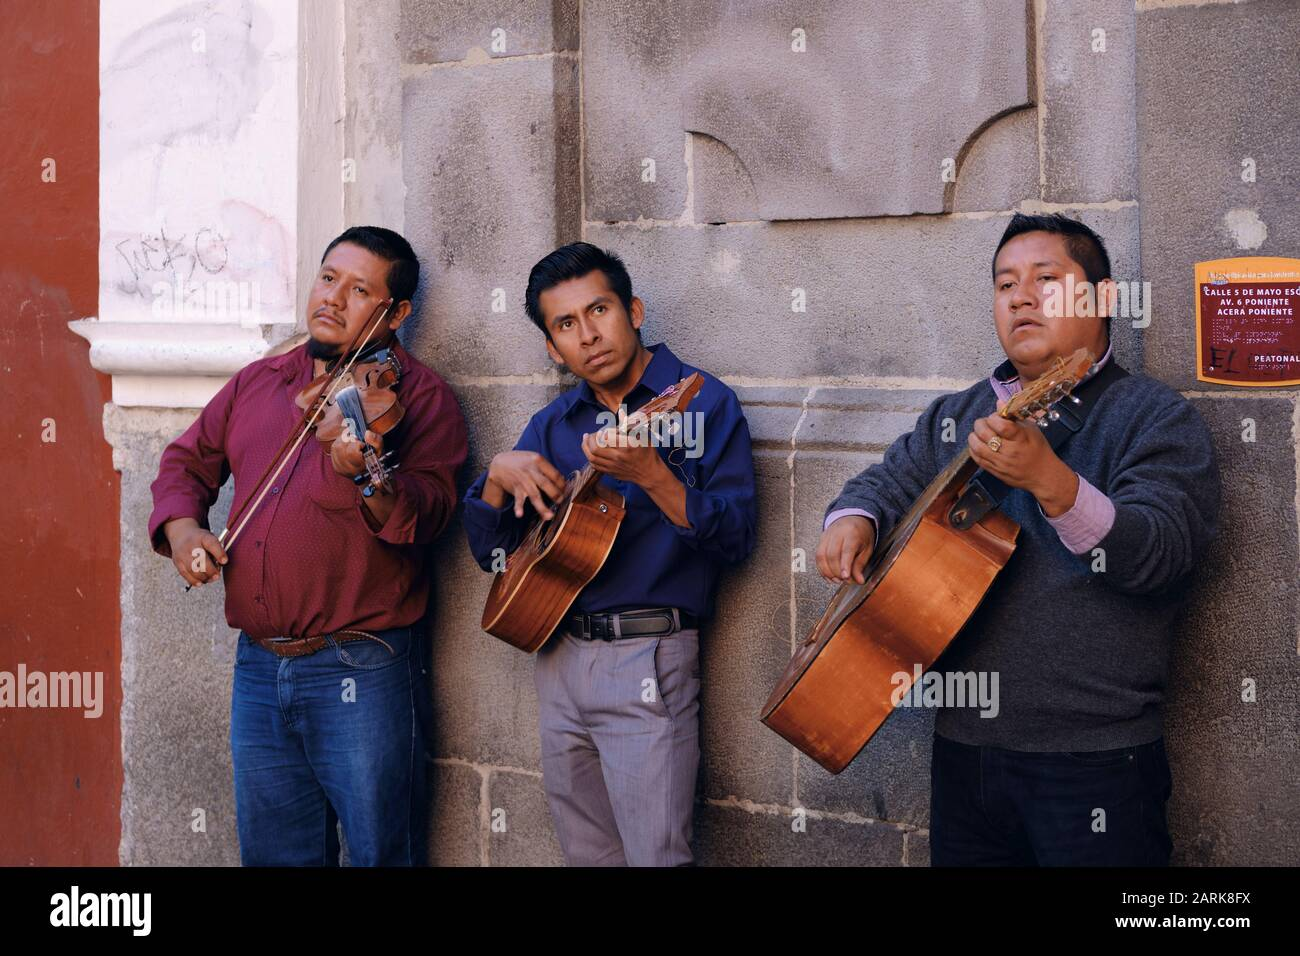 three-mexican-musicians-playing-string-instruments-against-a-wall-in-old-town-puebla-mexico-2ARK8FX.jpg